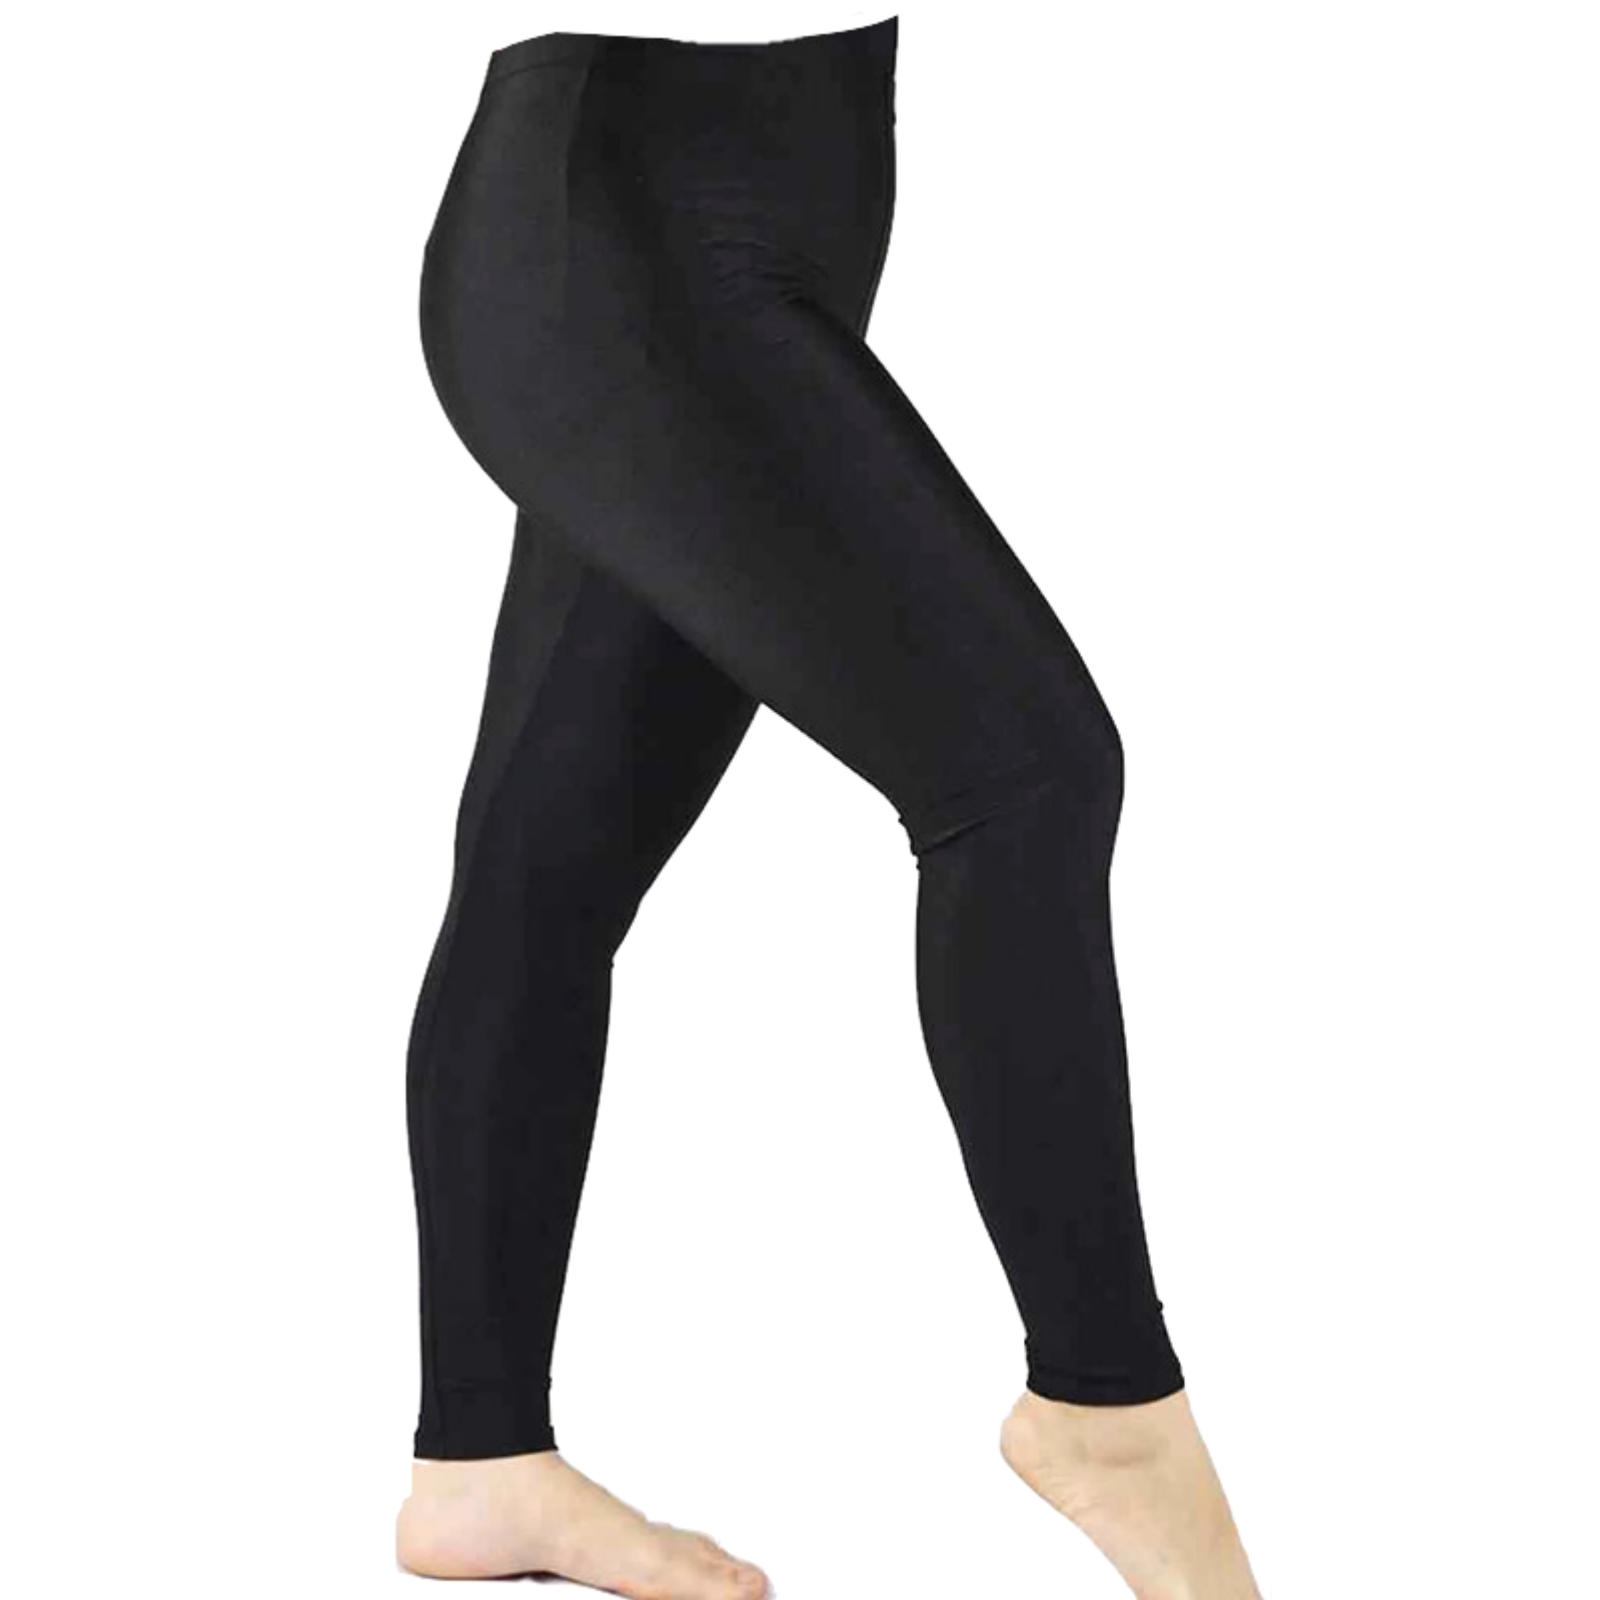 Women's Thermal Fur Lined High Waist Leggings Pants Thermals Warm Winter